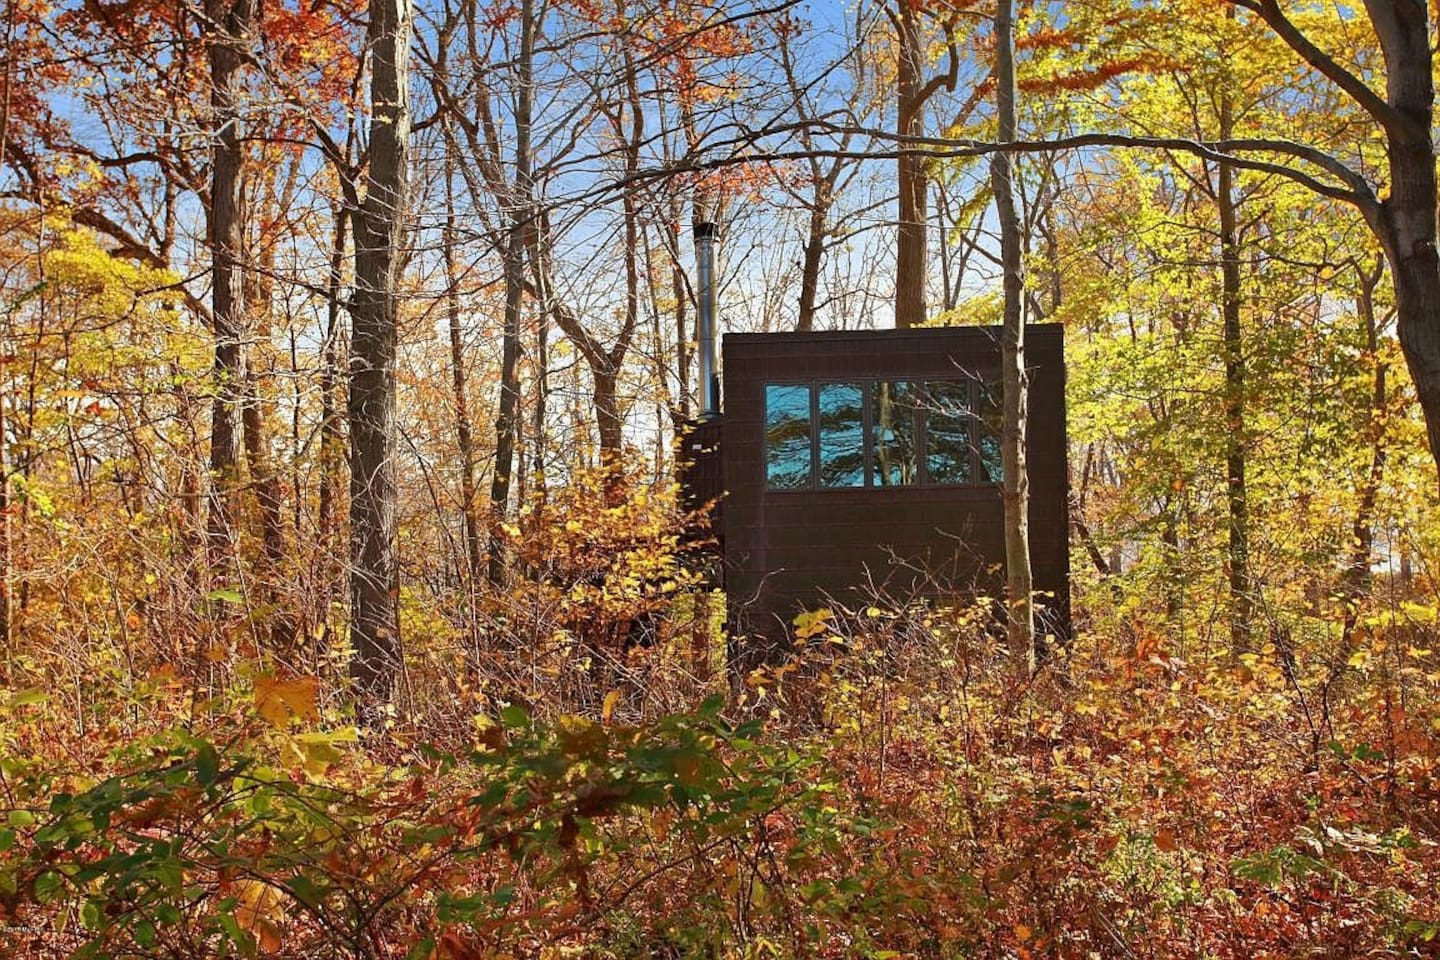 Cabin in Indiana surrounded by autumn foliage